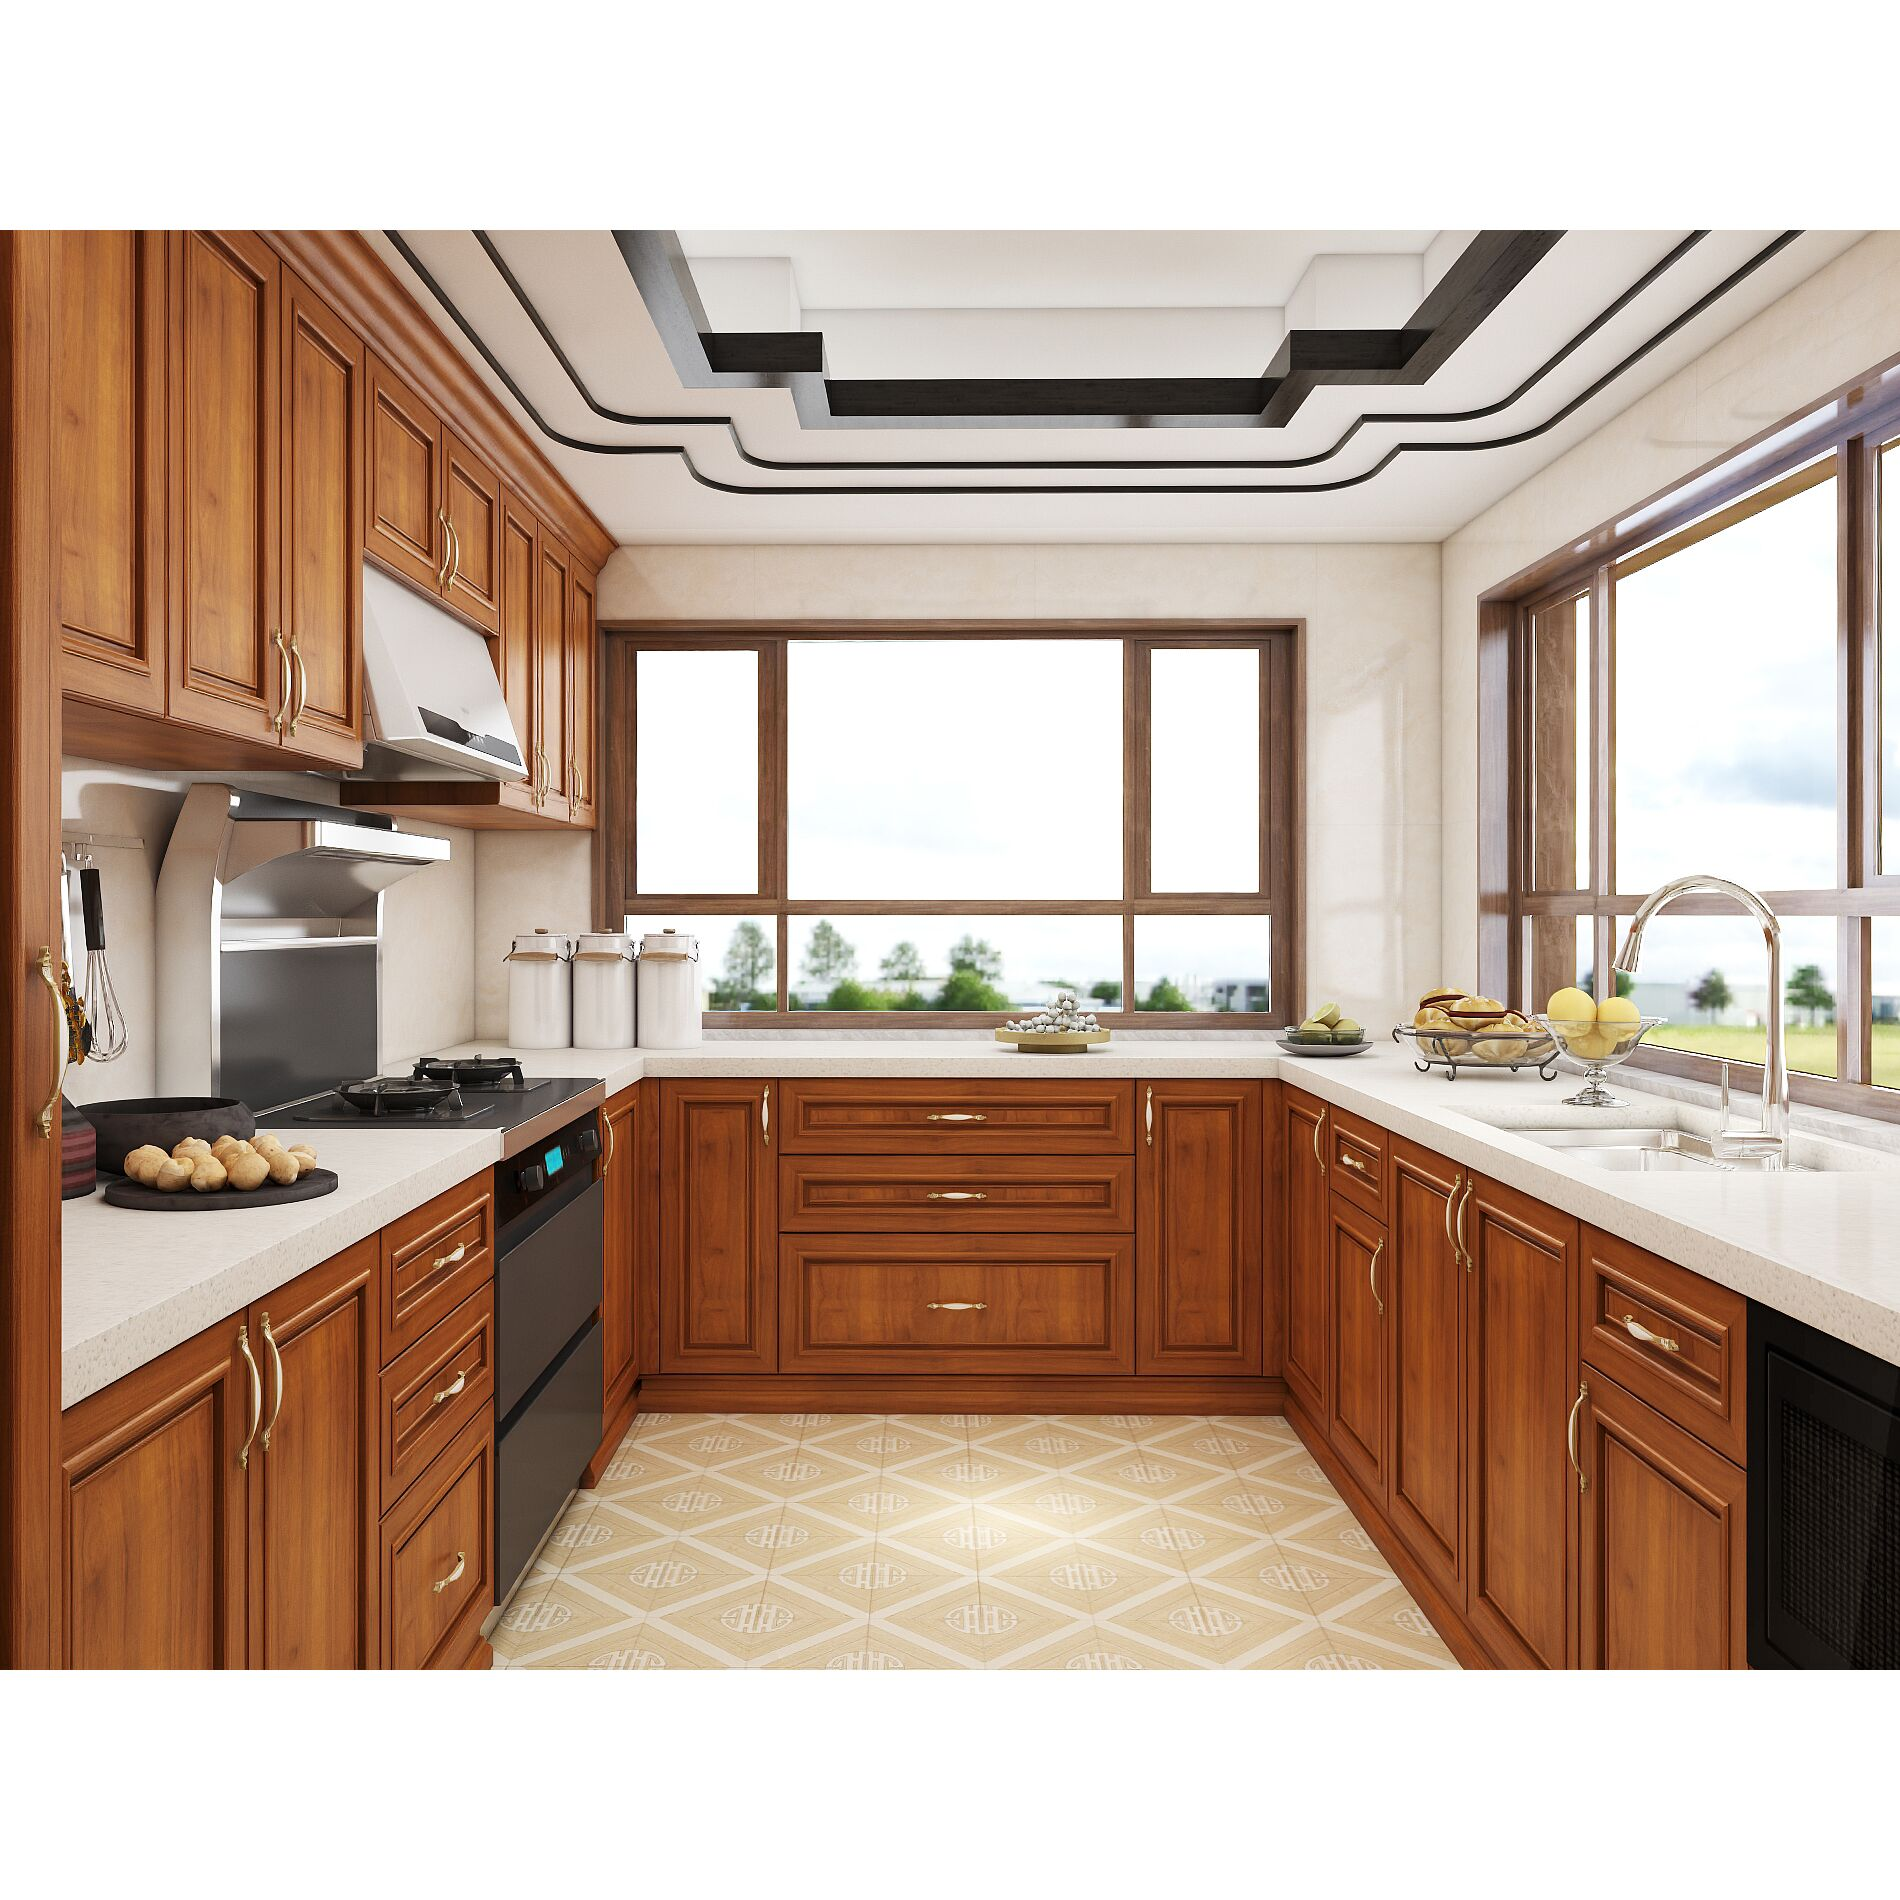 Customized Kitchen Pantry Solid Wood Shaker Style Kitchen Cabinet Buy Shaker Style Kitchen Cabinet Solid Wood Kitchen Cabinet Customized Kitchen Pantry Product On Alibaba Com